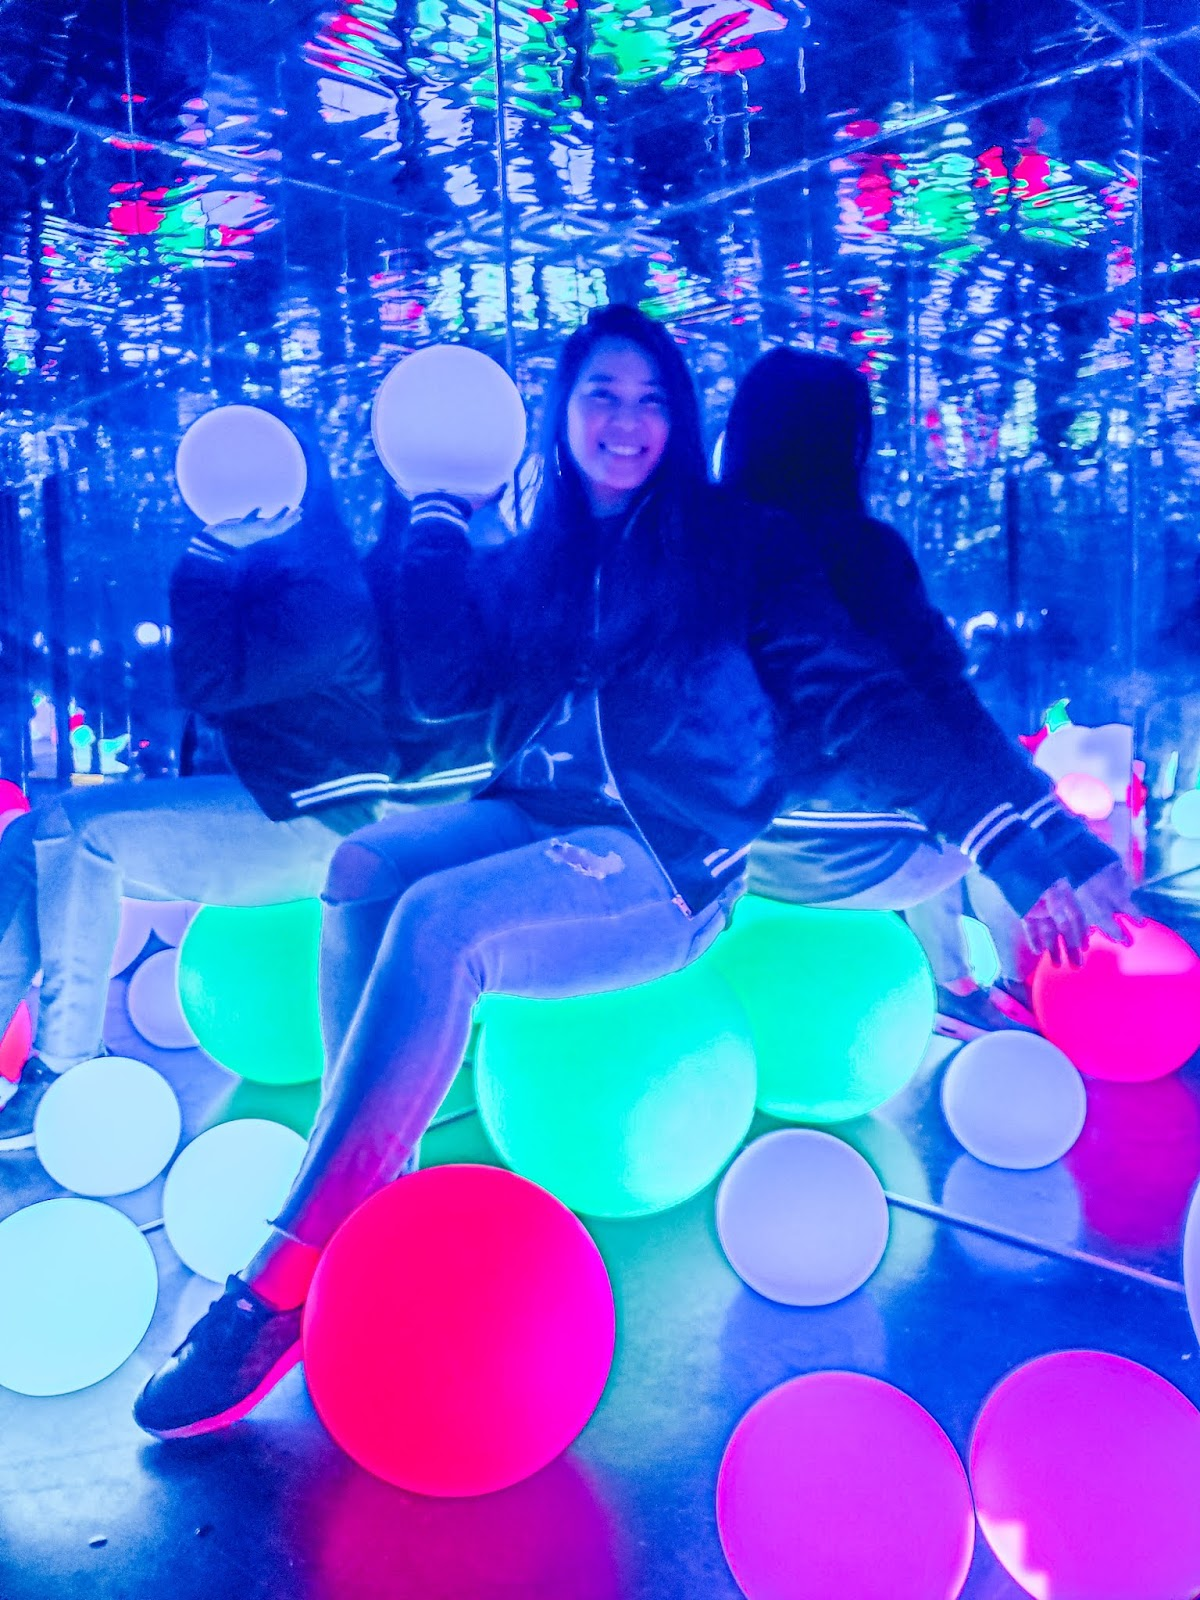 Glowball mirror room at the Seattle Selfie Museum downtown Pike place